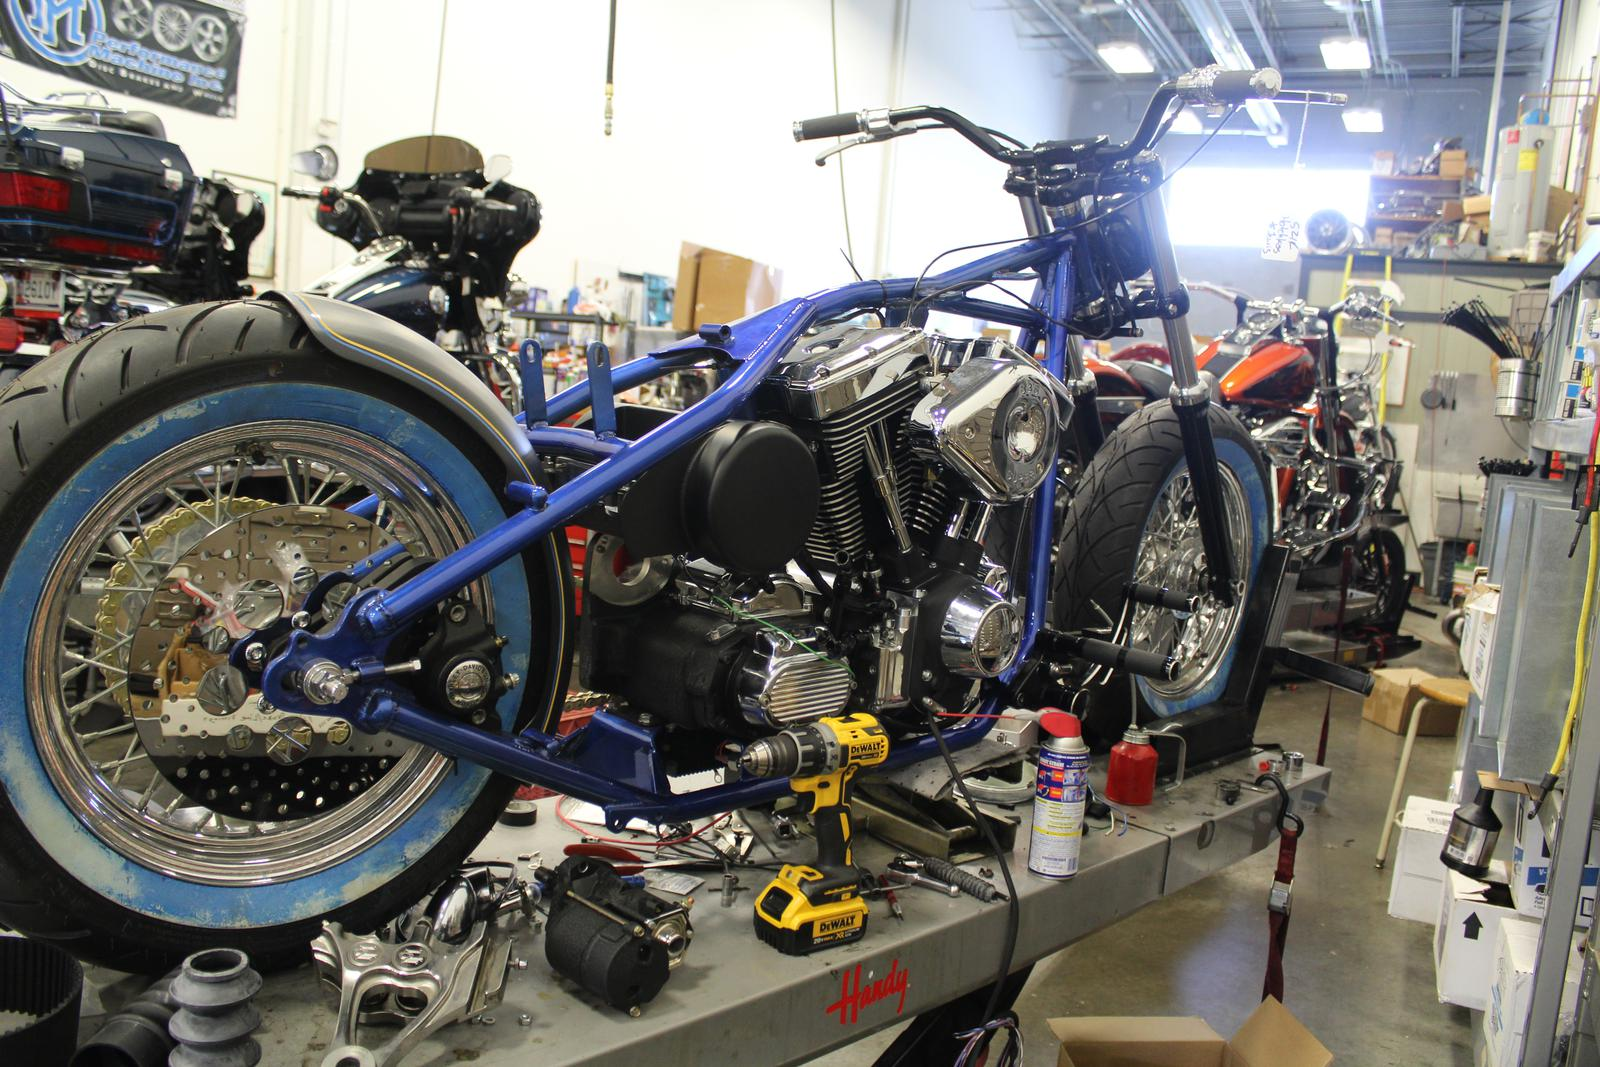 Custom Bobber Motorcycle Frames To Custom Motorcycle Build Rigid Frame Bobber For Lewis Hotchkiss Jackman Cycles Ormond